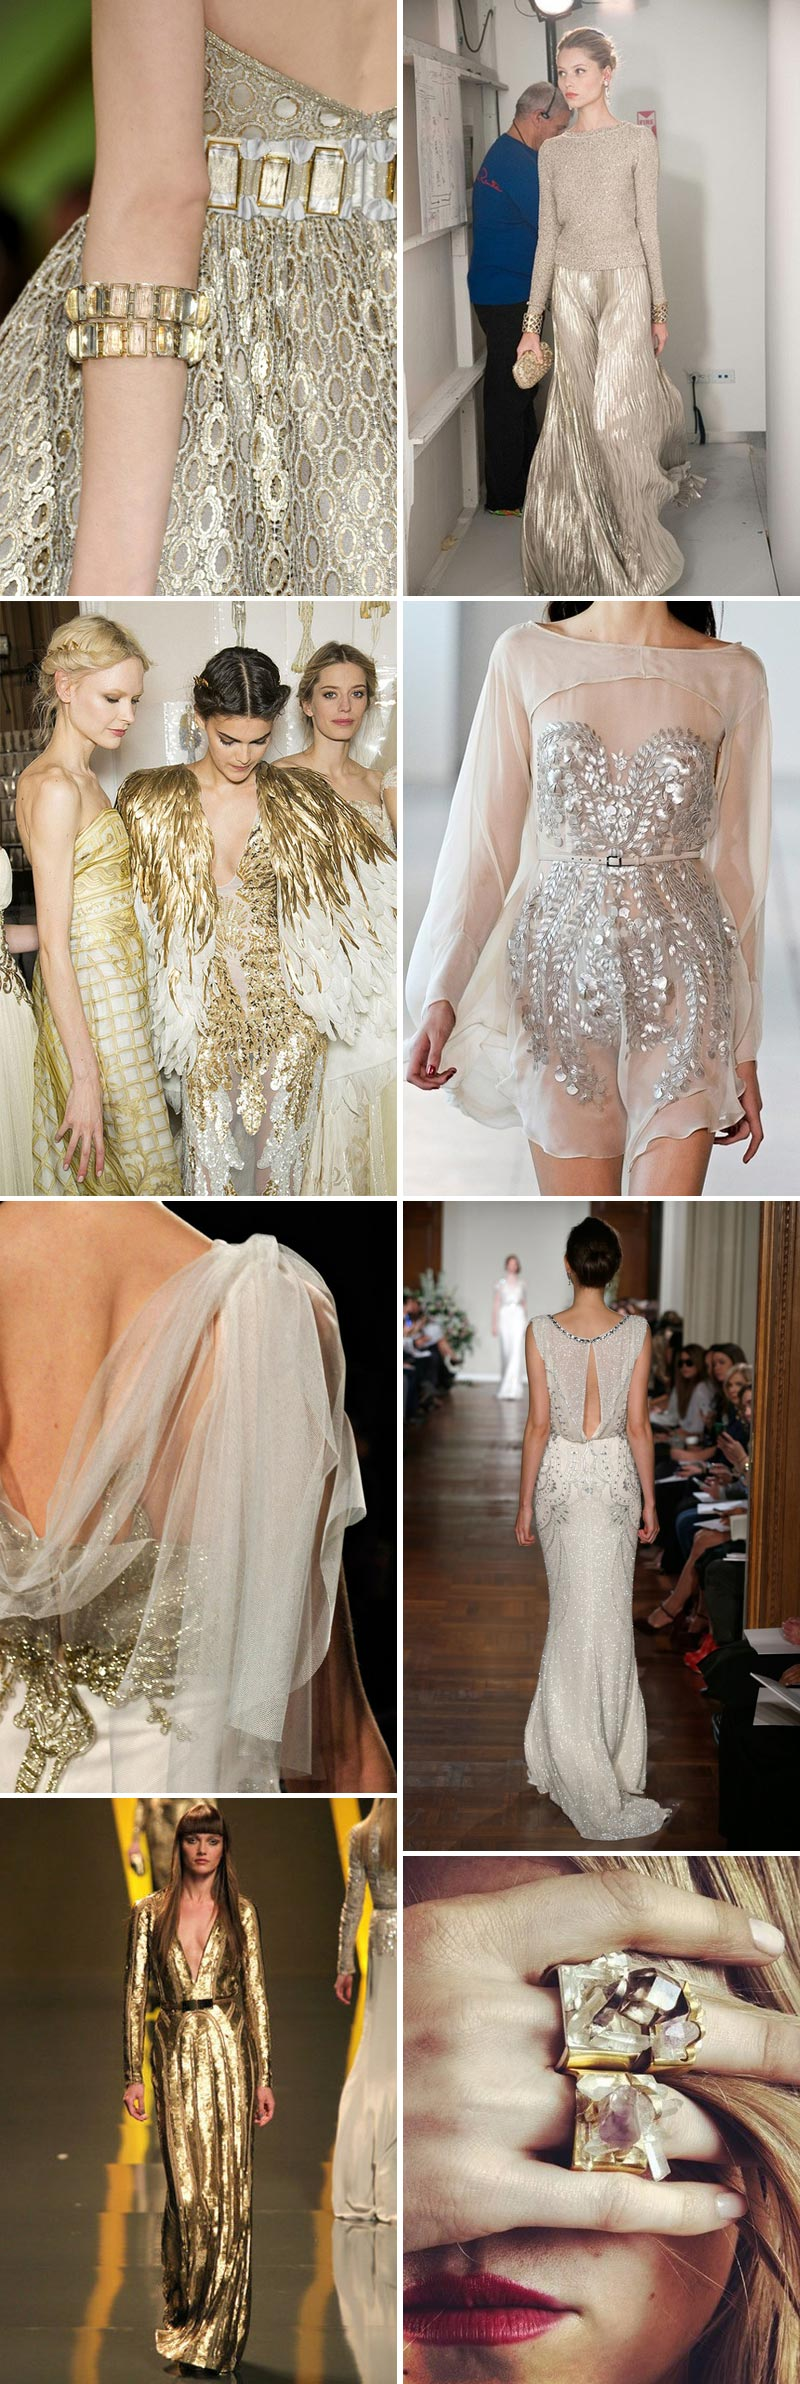 Metallic Bridal Inspiration Sartorial